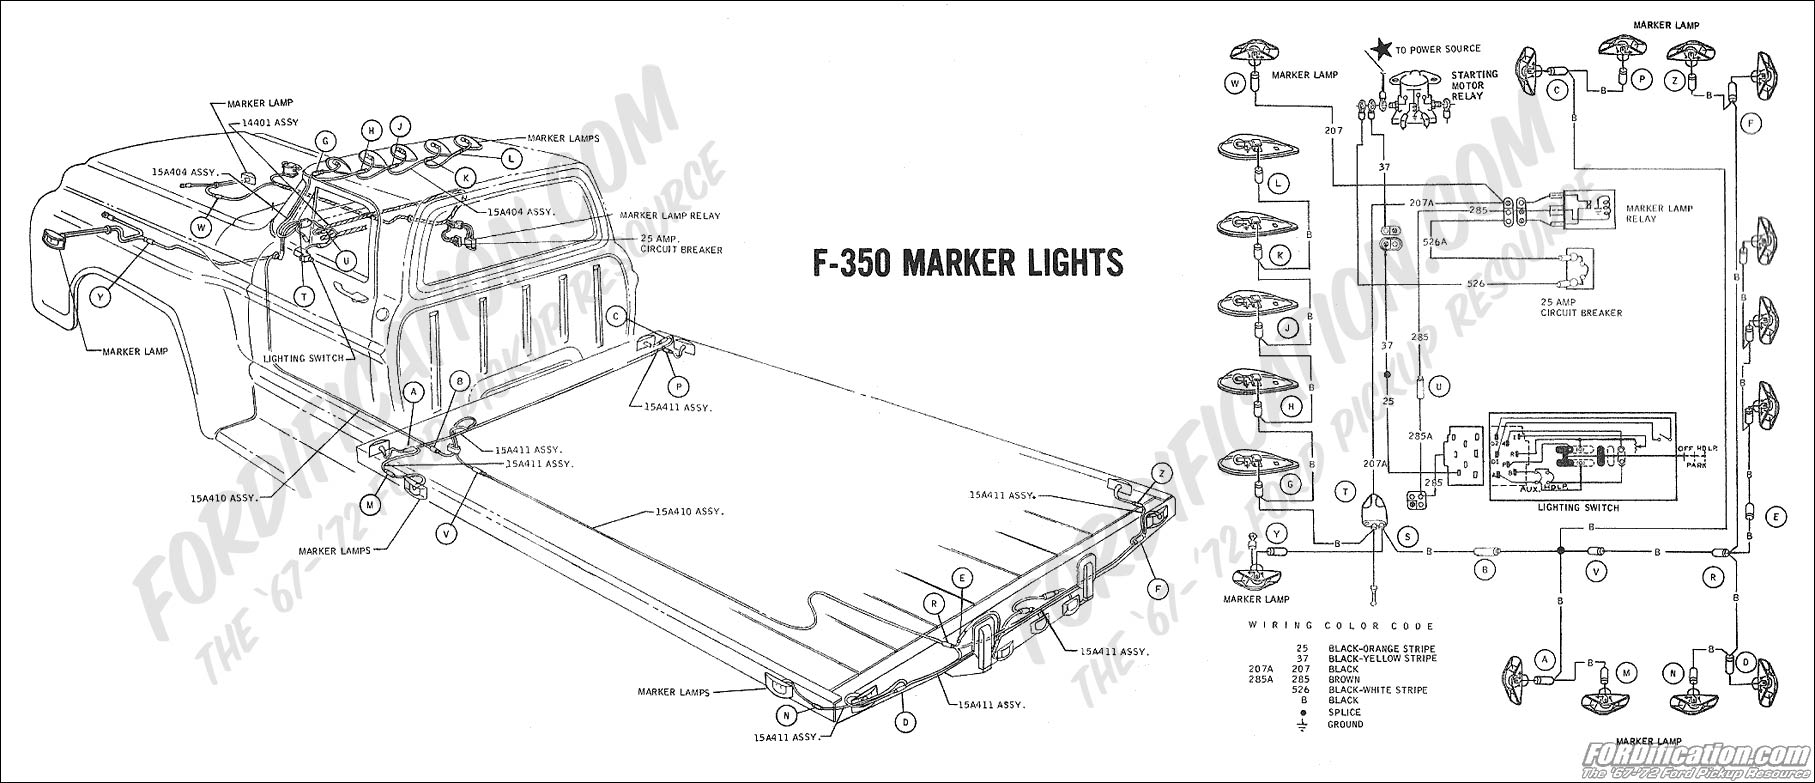 Admirable Ford Truck Technical Drawings And Schematics Section H Wiring Wiring Cloud Vieworaidewilluminateatxorg